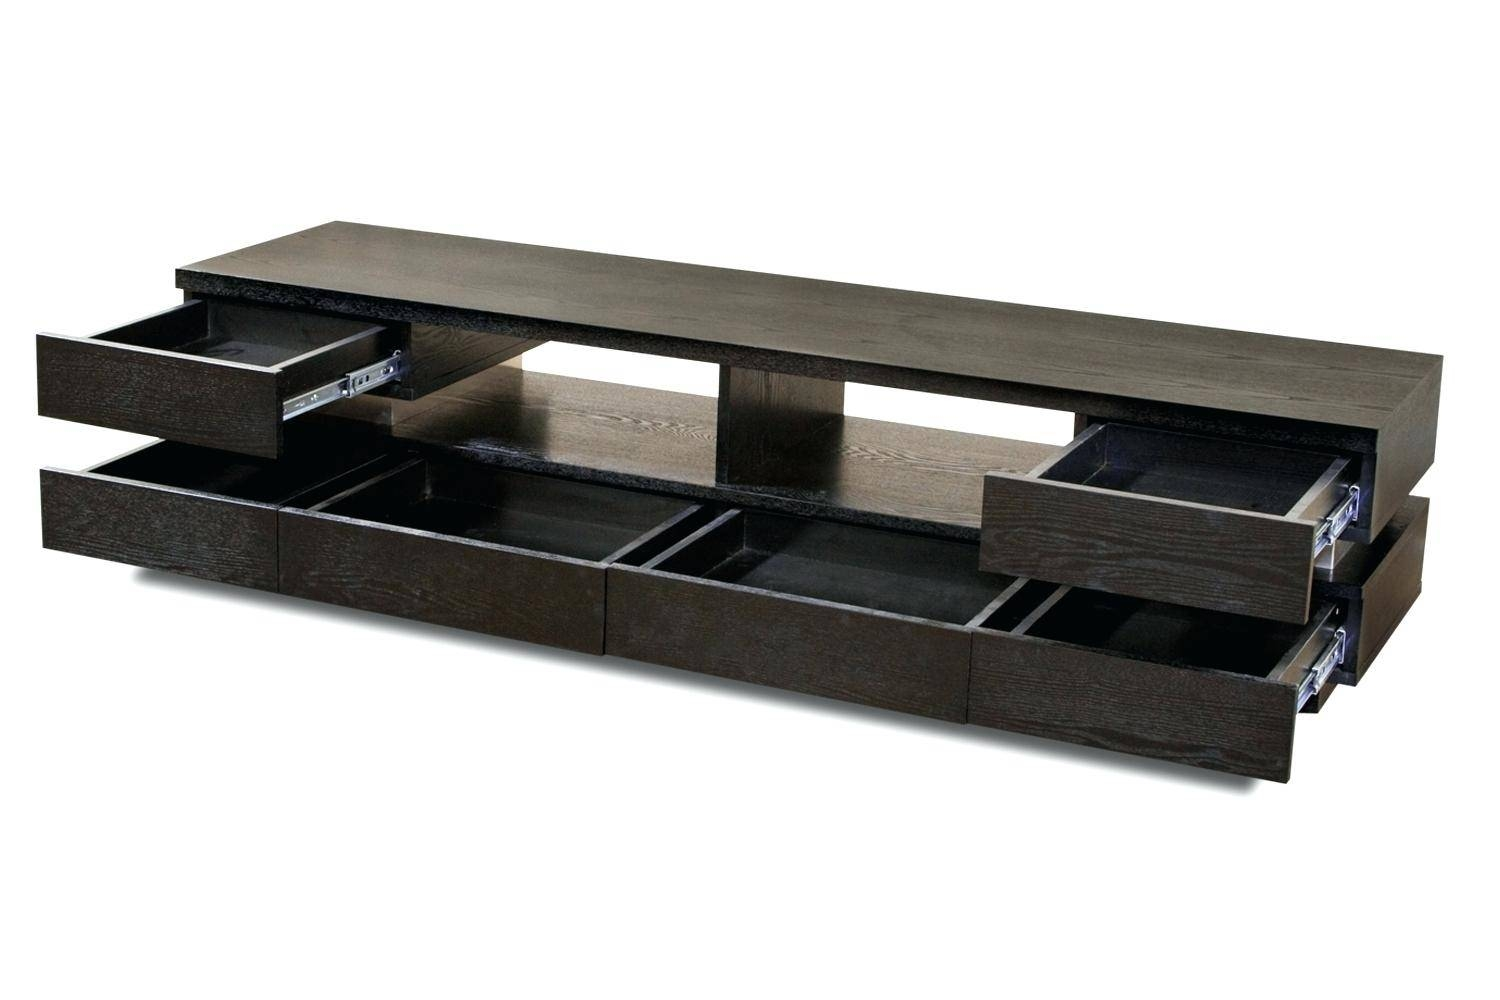 Popular 185 list modern low profile tv stand for Low height furniture design